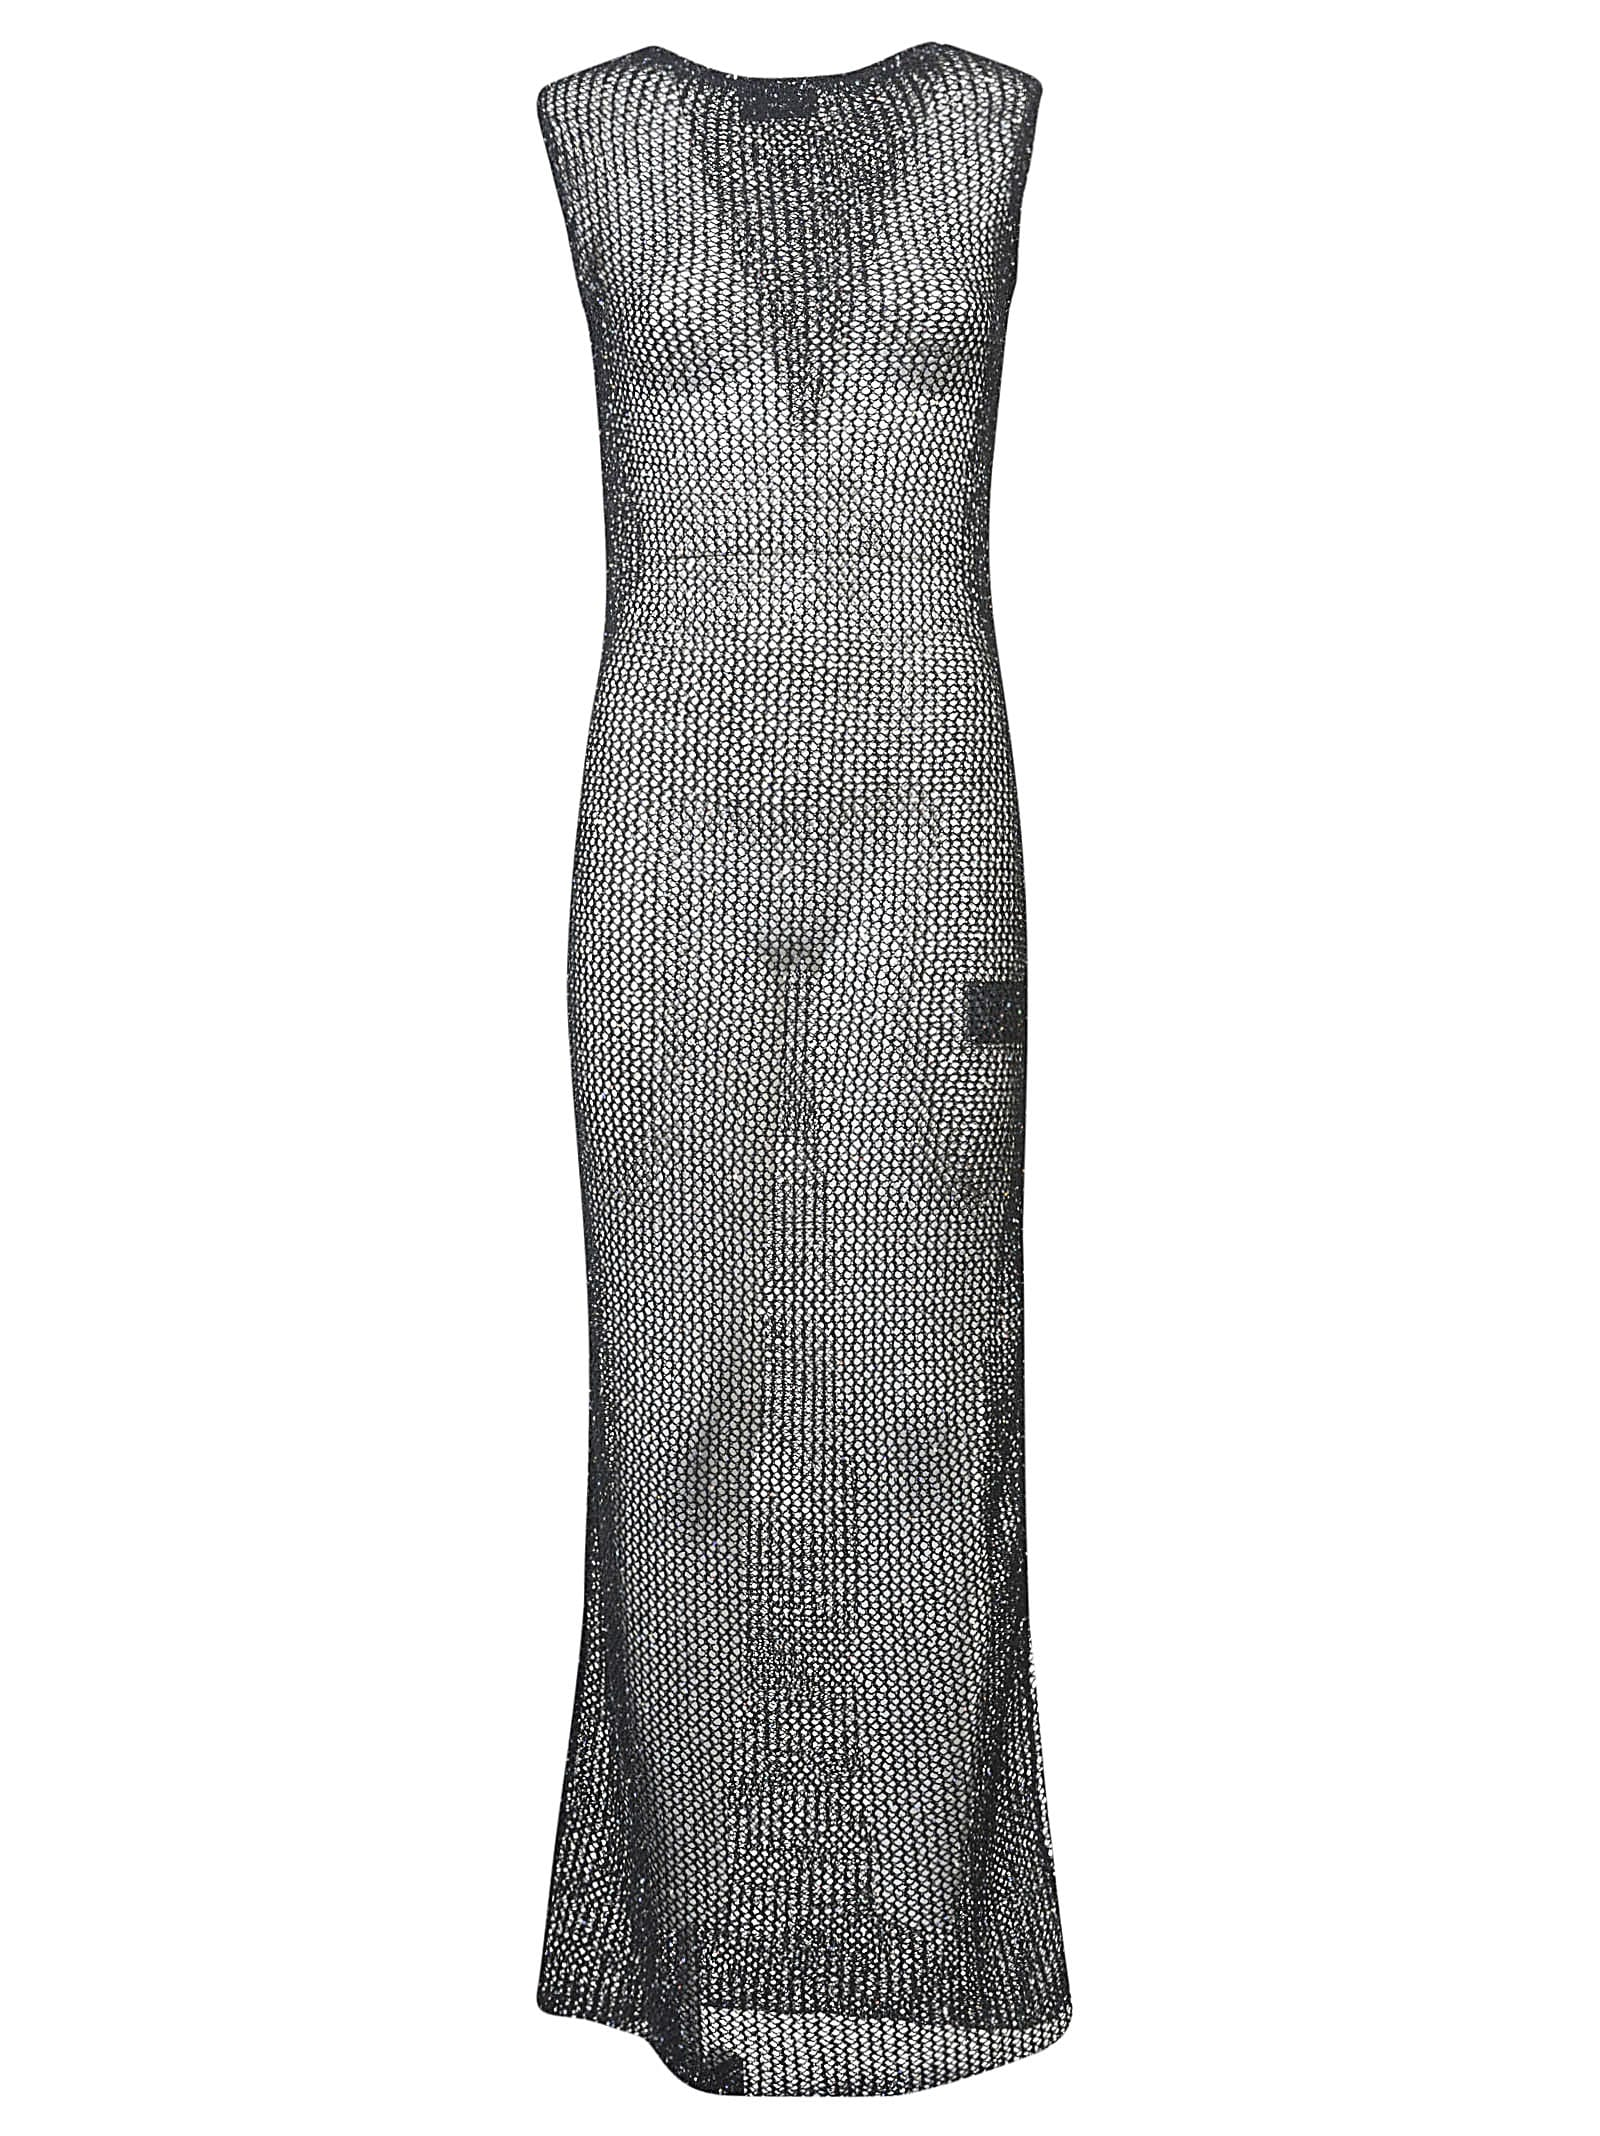 Buy Alanui Sequined Net Long Knit Dress online, shop Alanui with free shipping